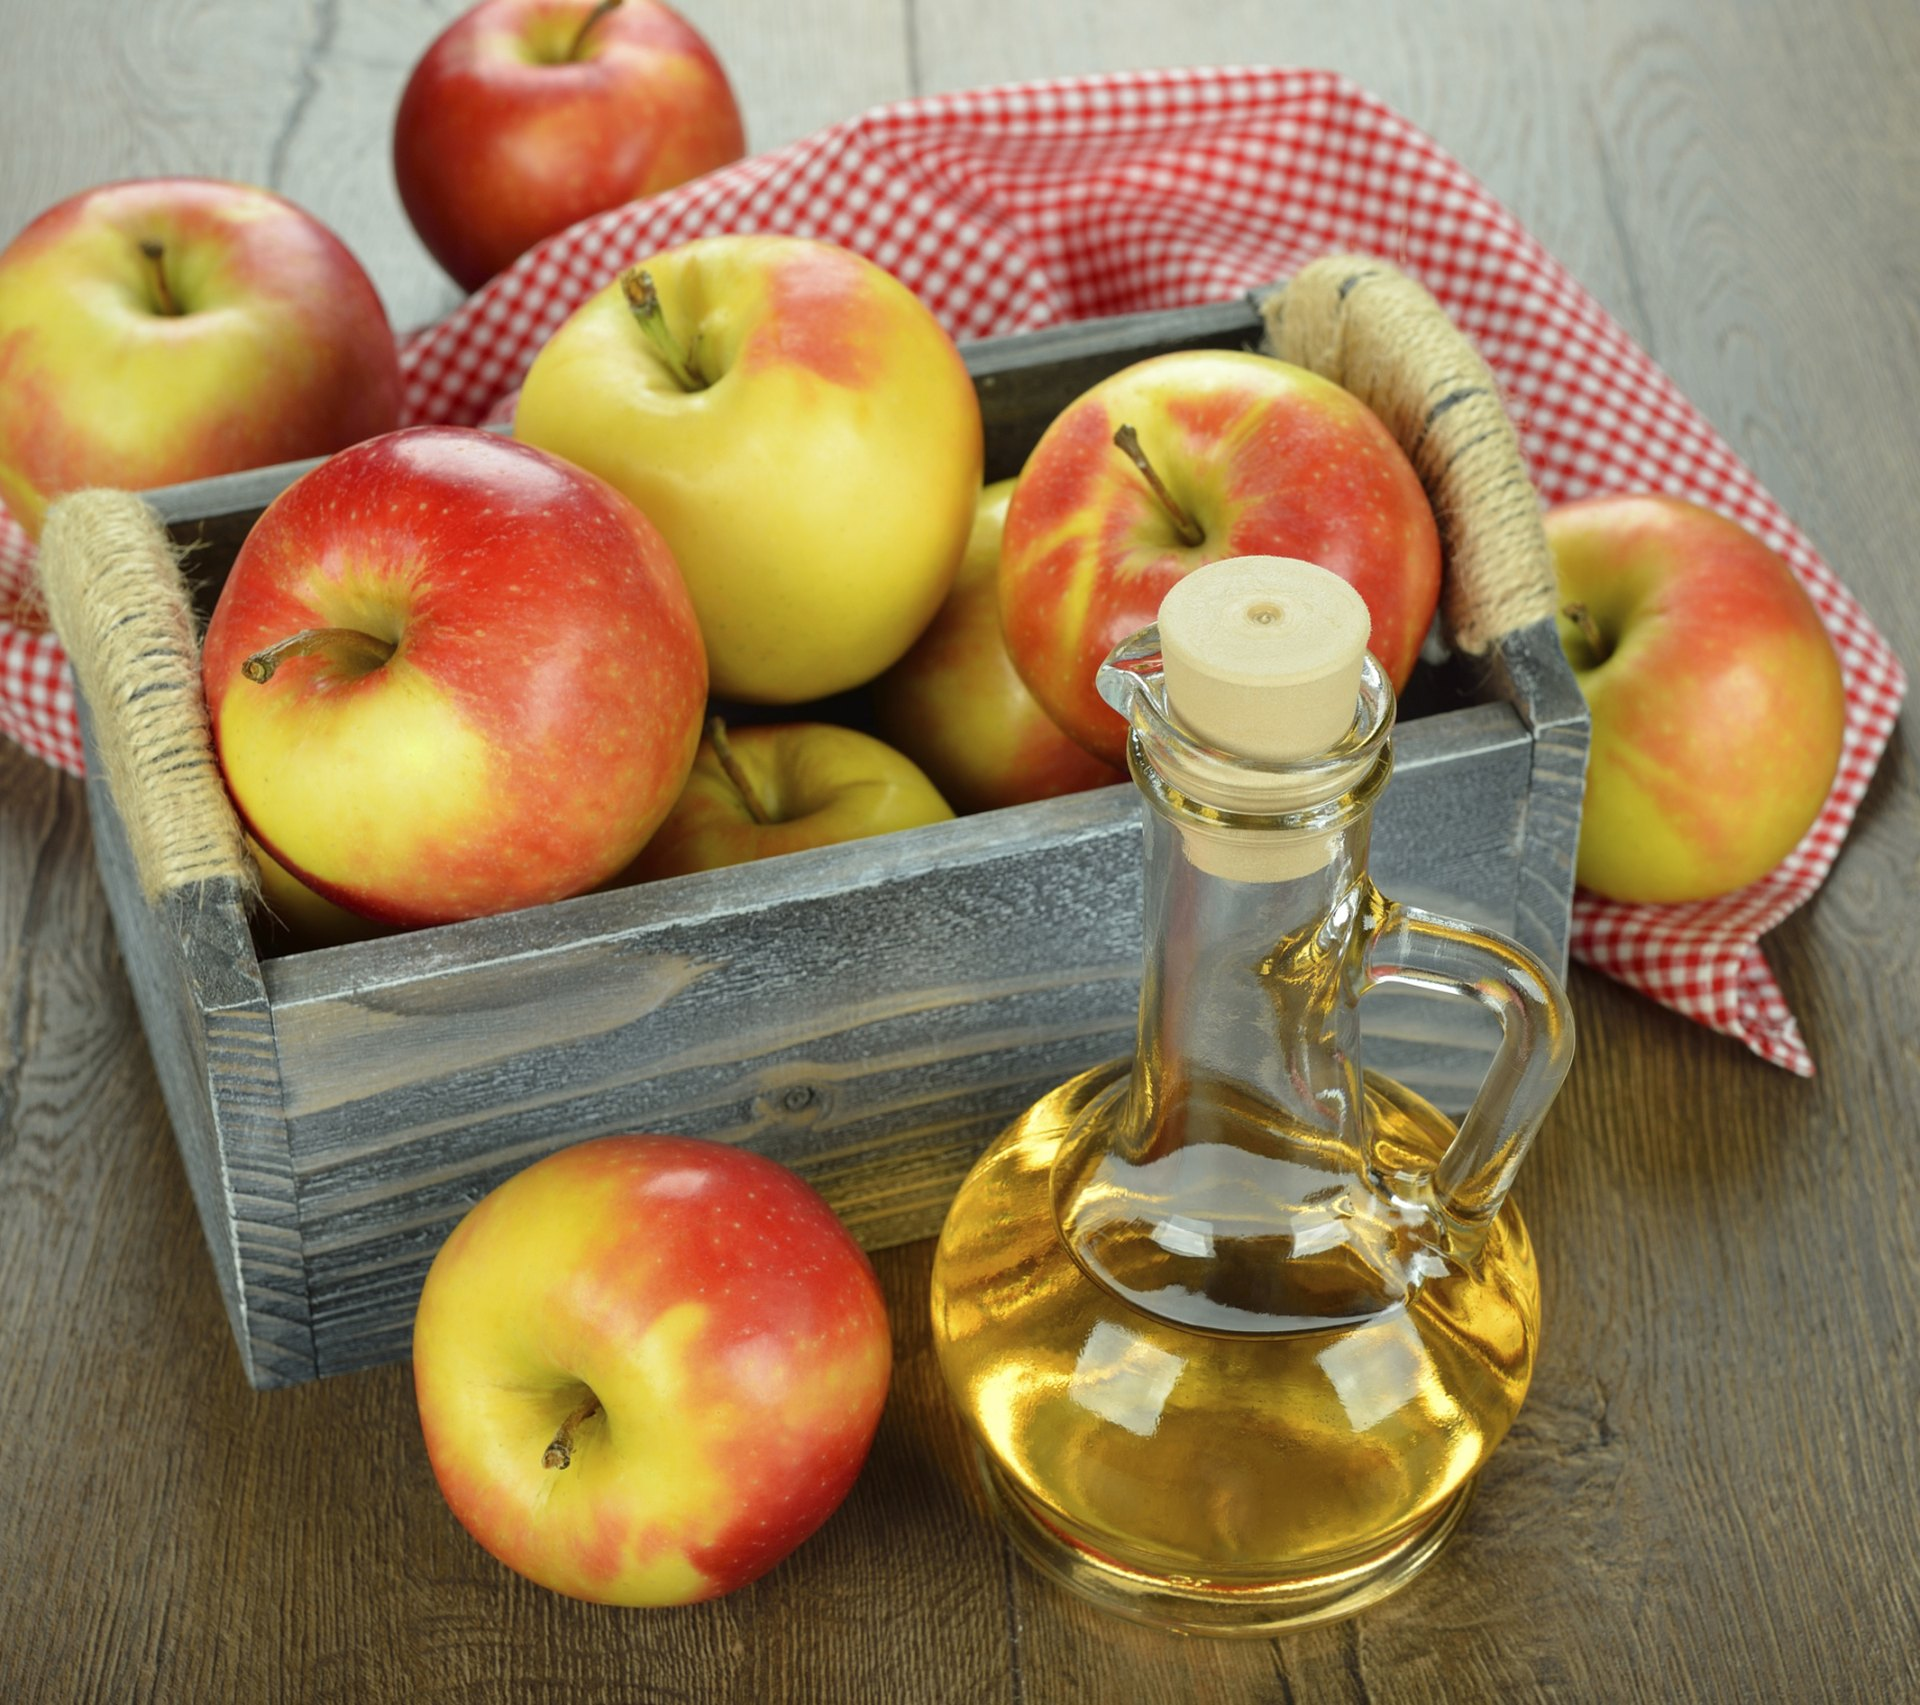 Mutable Uti Dosage Apple Cider Vinegar Apple Cider Vinegar As A Kidney Infection Cure Apple Cider Vinegar Uti Pregnant houzz-03 Apple Cider Vinegar For Uti